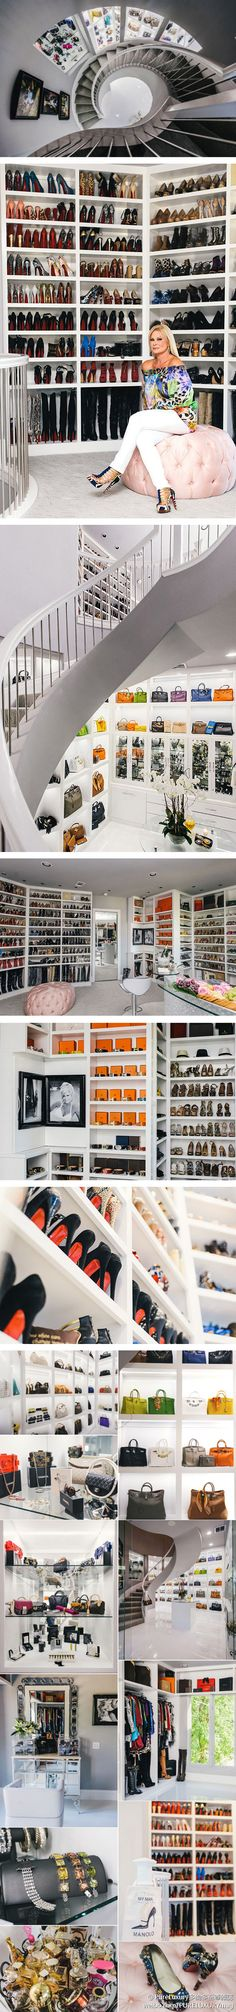 Time to redo your closet?Theresa Roemer's Fabulously Luxurious Closet - Pure Luxury Magazine - ShazB - Dream Homes Walk In Wardrobe, Walk In Closet, Shoe Closet, Wardrobe Design, Master Closet, Closet Bedroom, Dressing Room Closet, Dressing Rooms, Dressing Tables